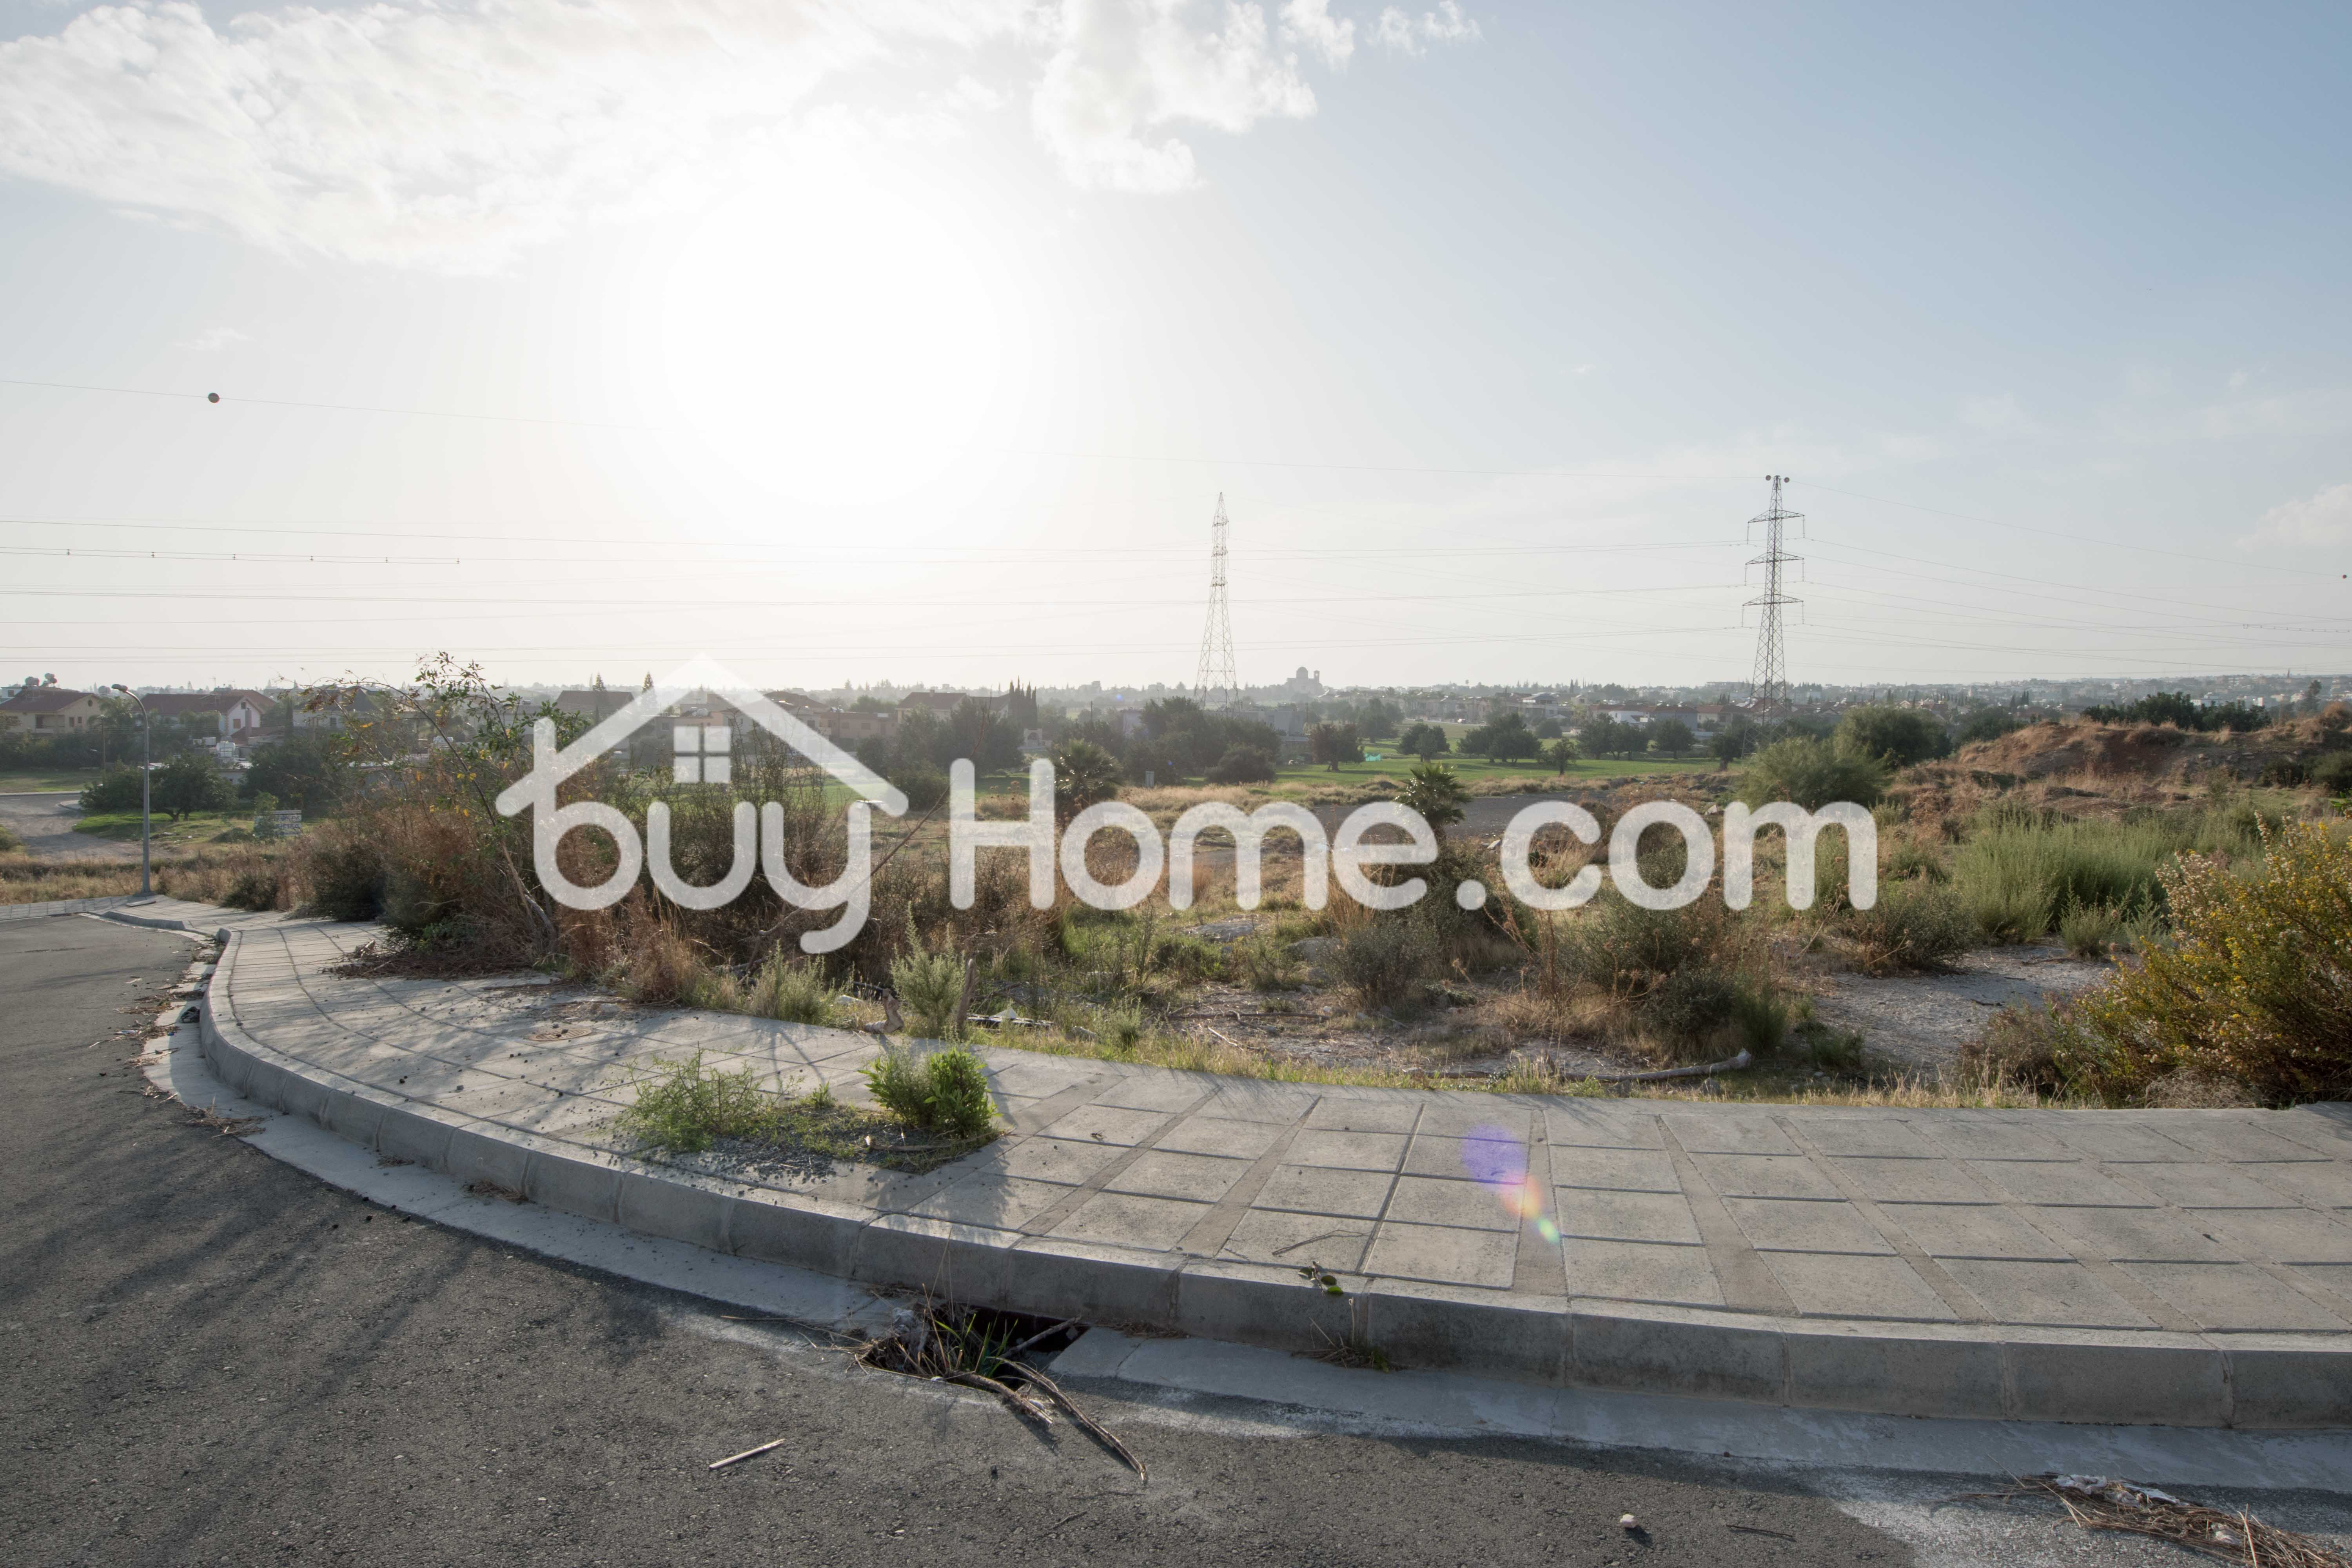 Commercial Land For Medical Centre | BuyHome